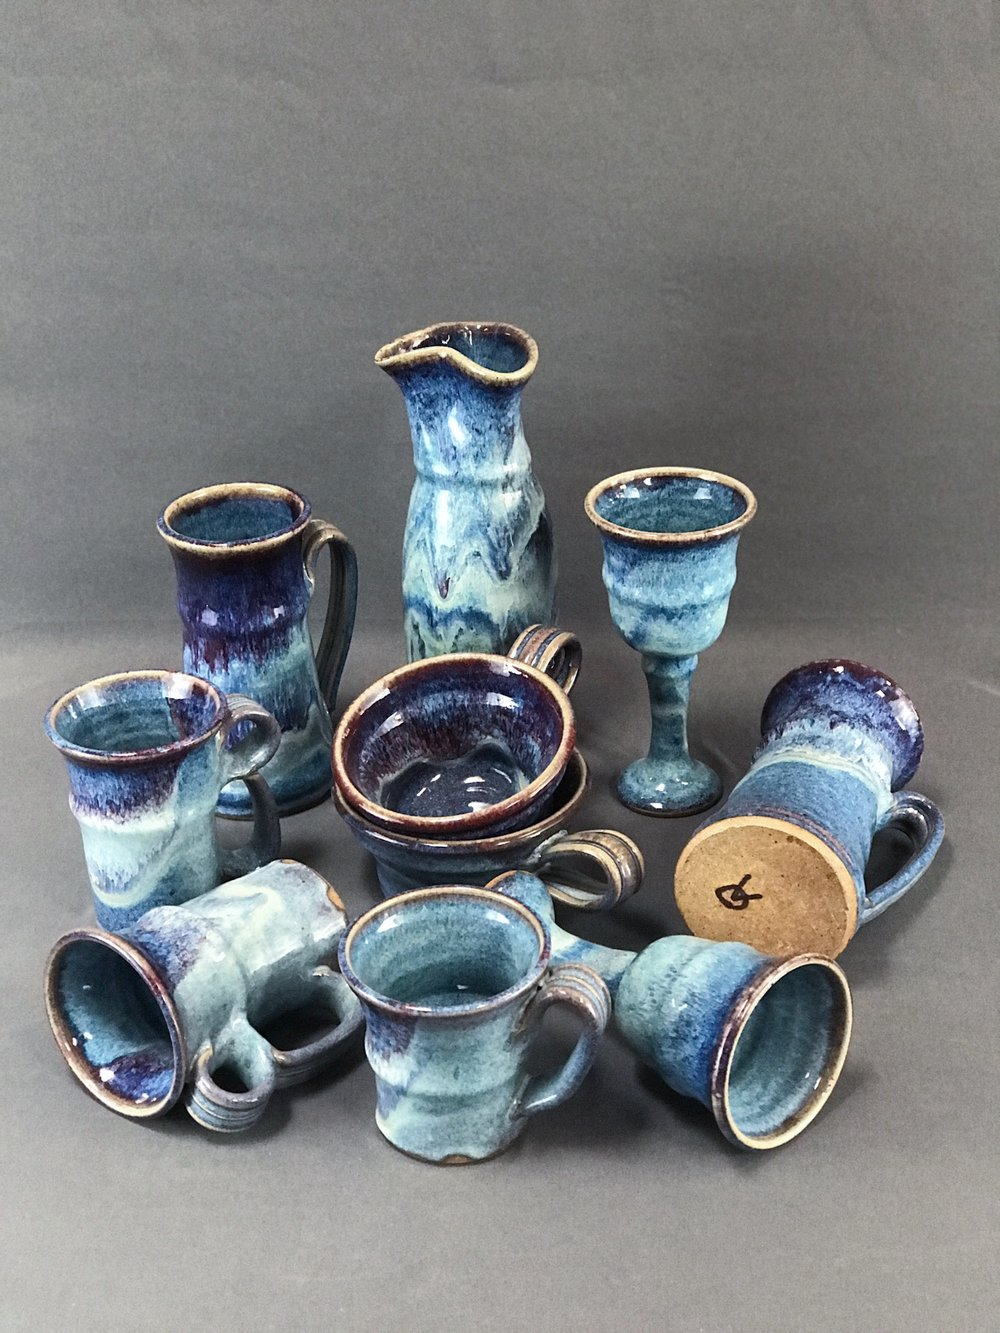 Ken Merrick | Earthenware